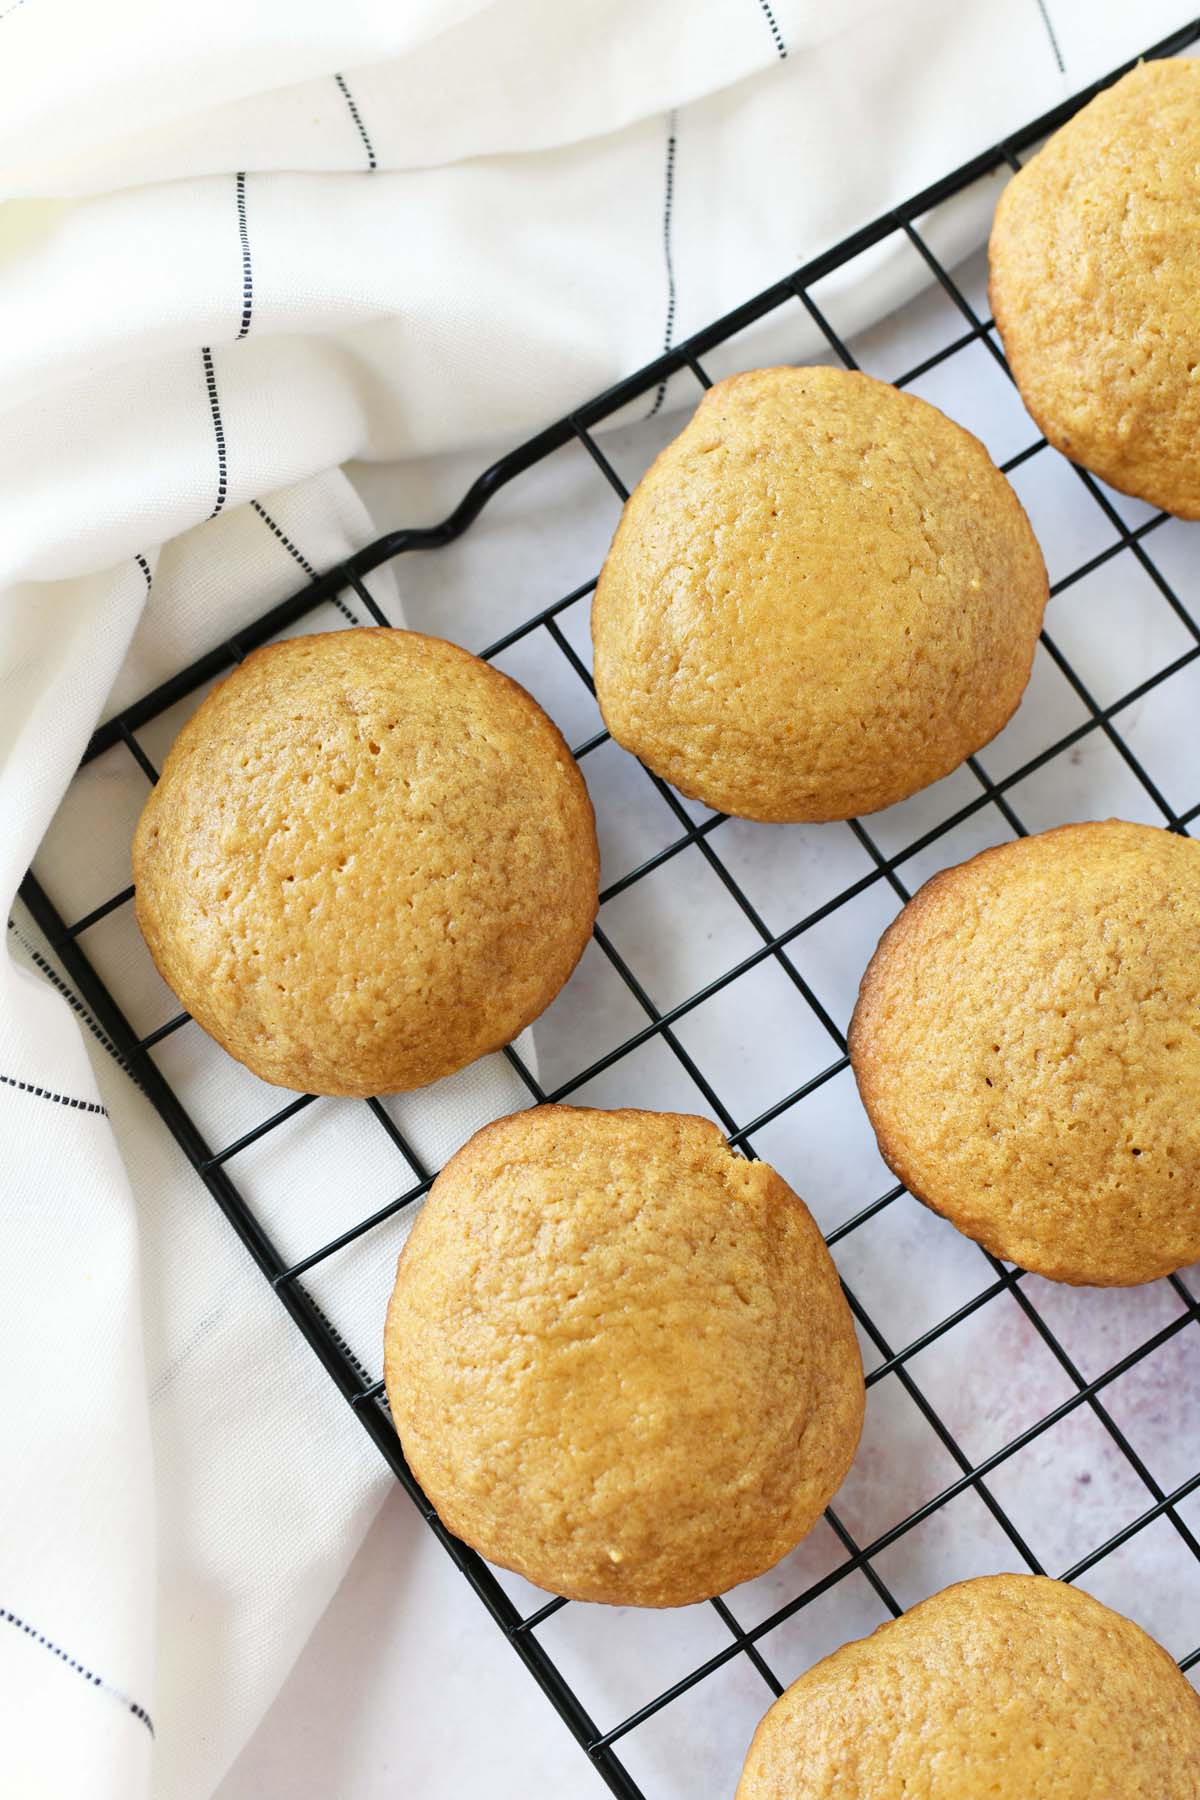 Baked Pumpkin cookies on a wire rack.